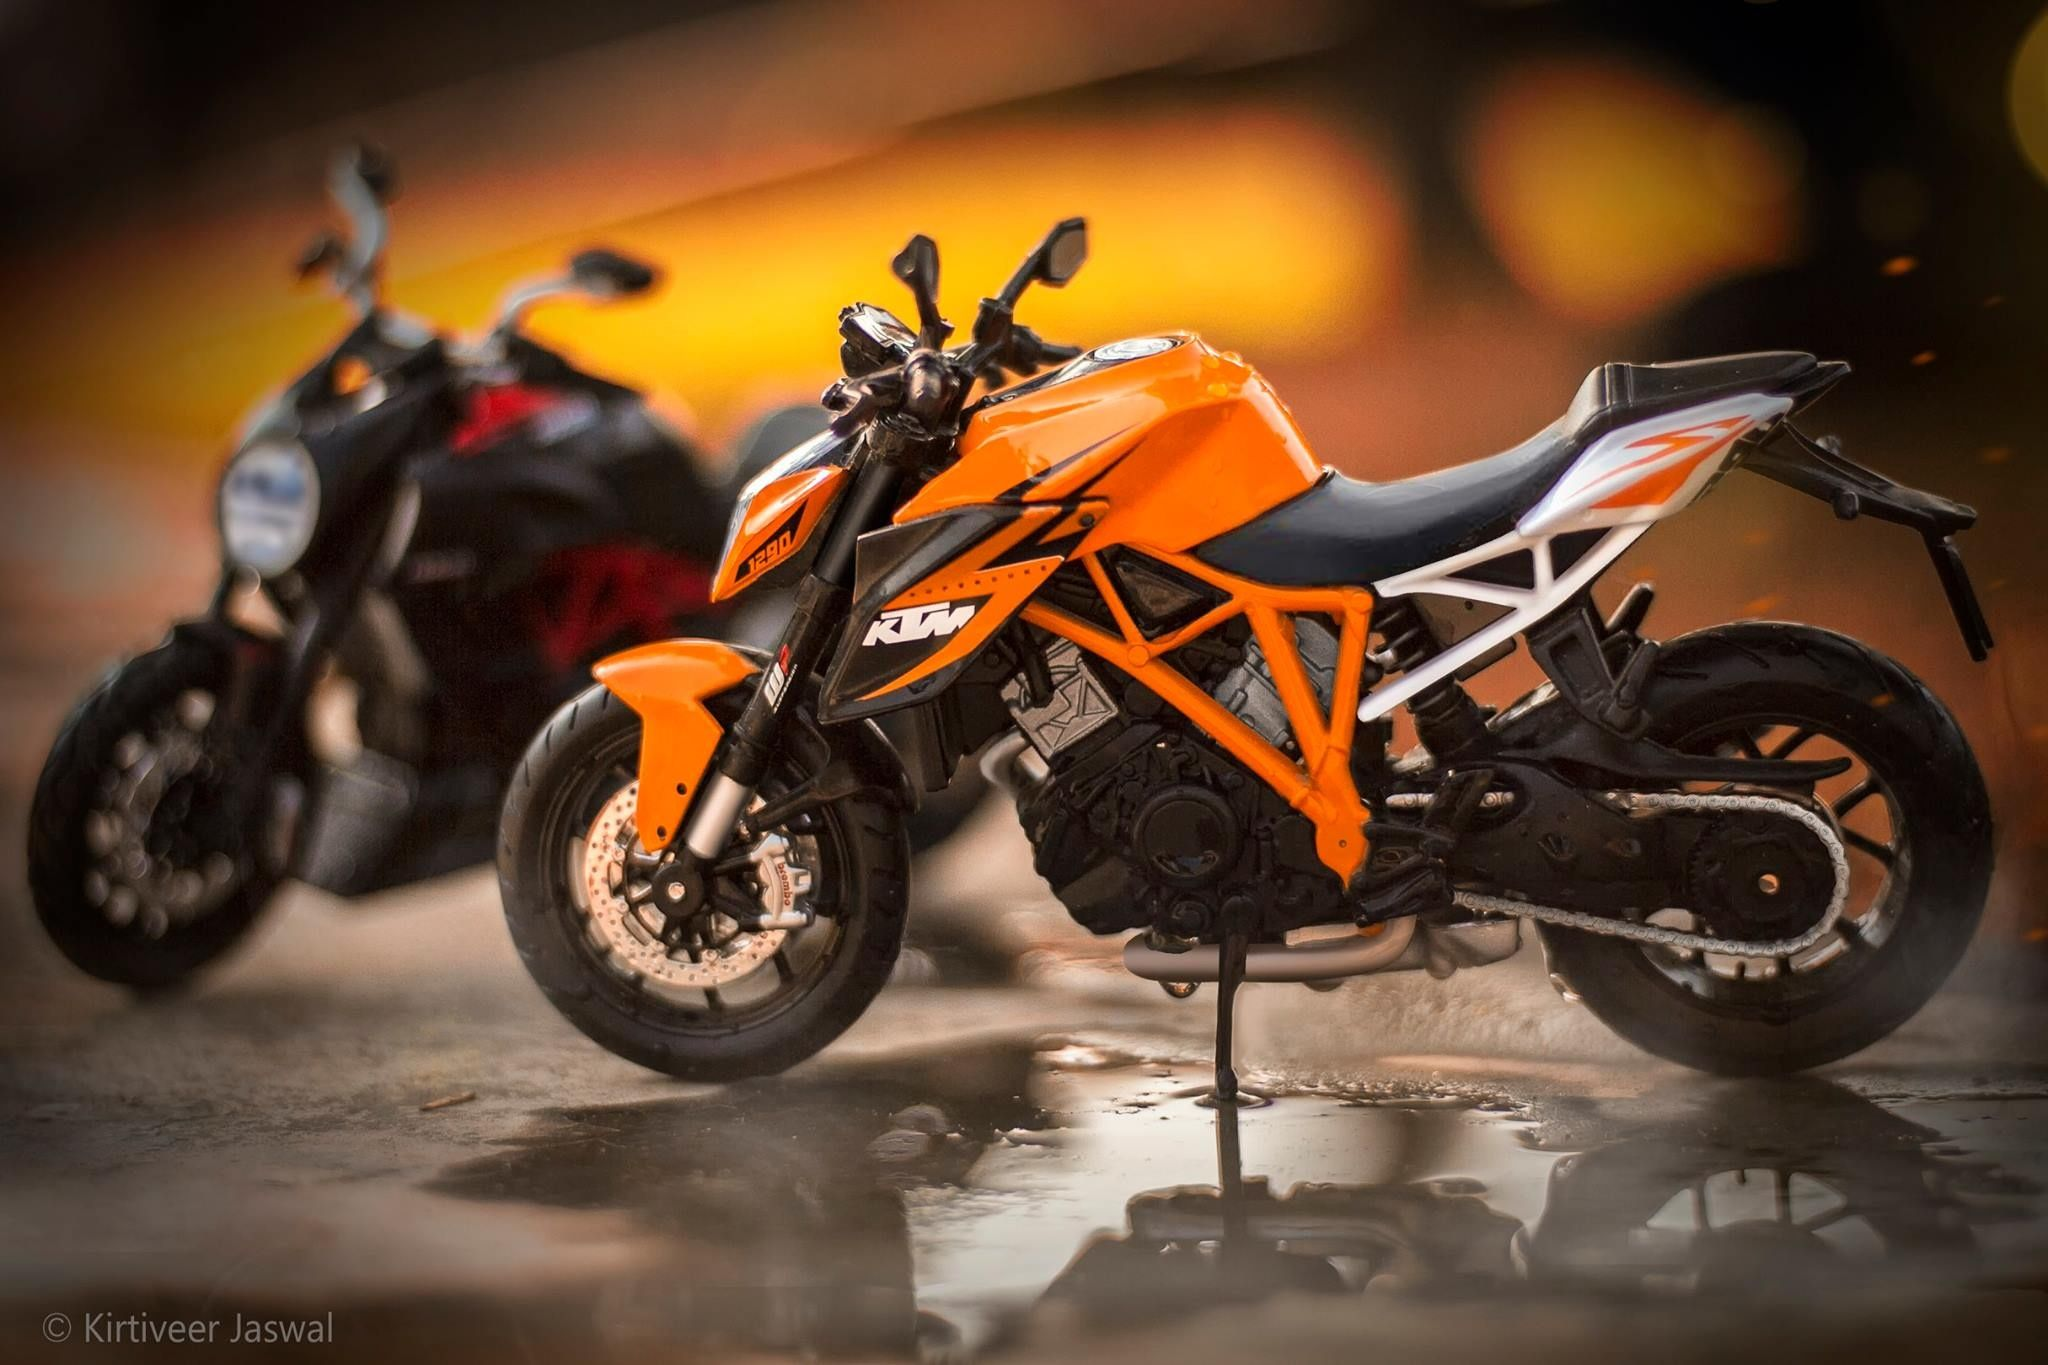 What is the best picture of KTM duke 200? - Quora